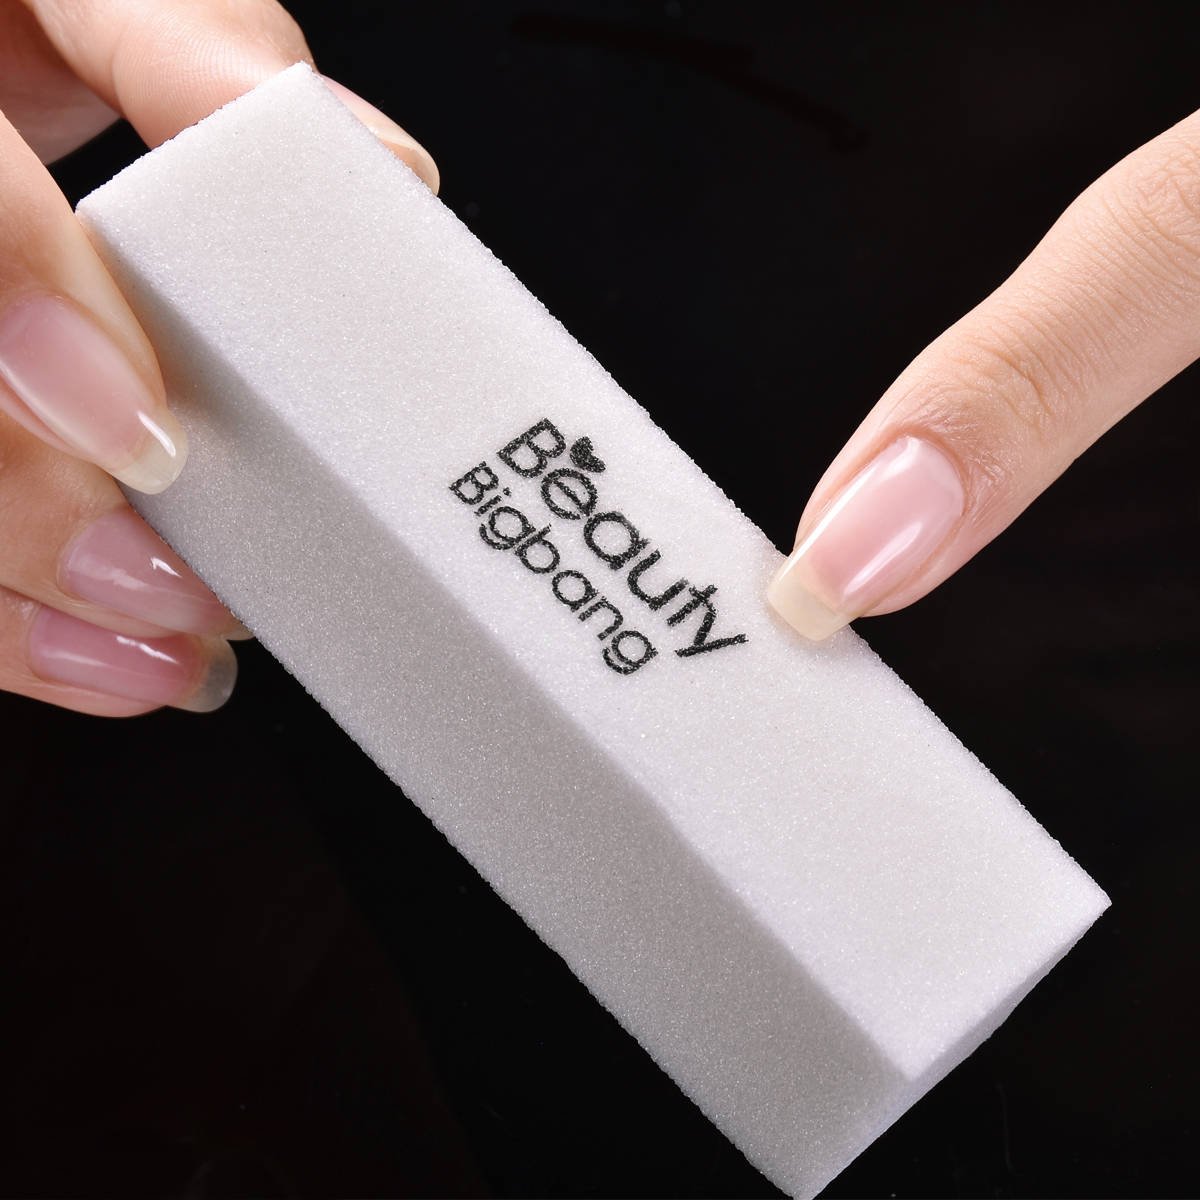 Beauty BigBang Sanding Sponge Nail Files Buffer Block Nail Art Manicure White Nail Buffers File Lime A Ongle Professionel